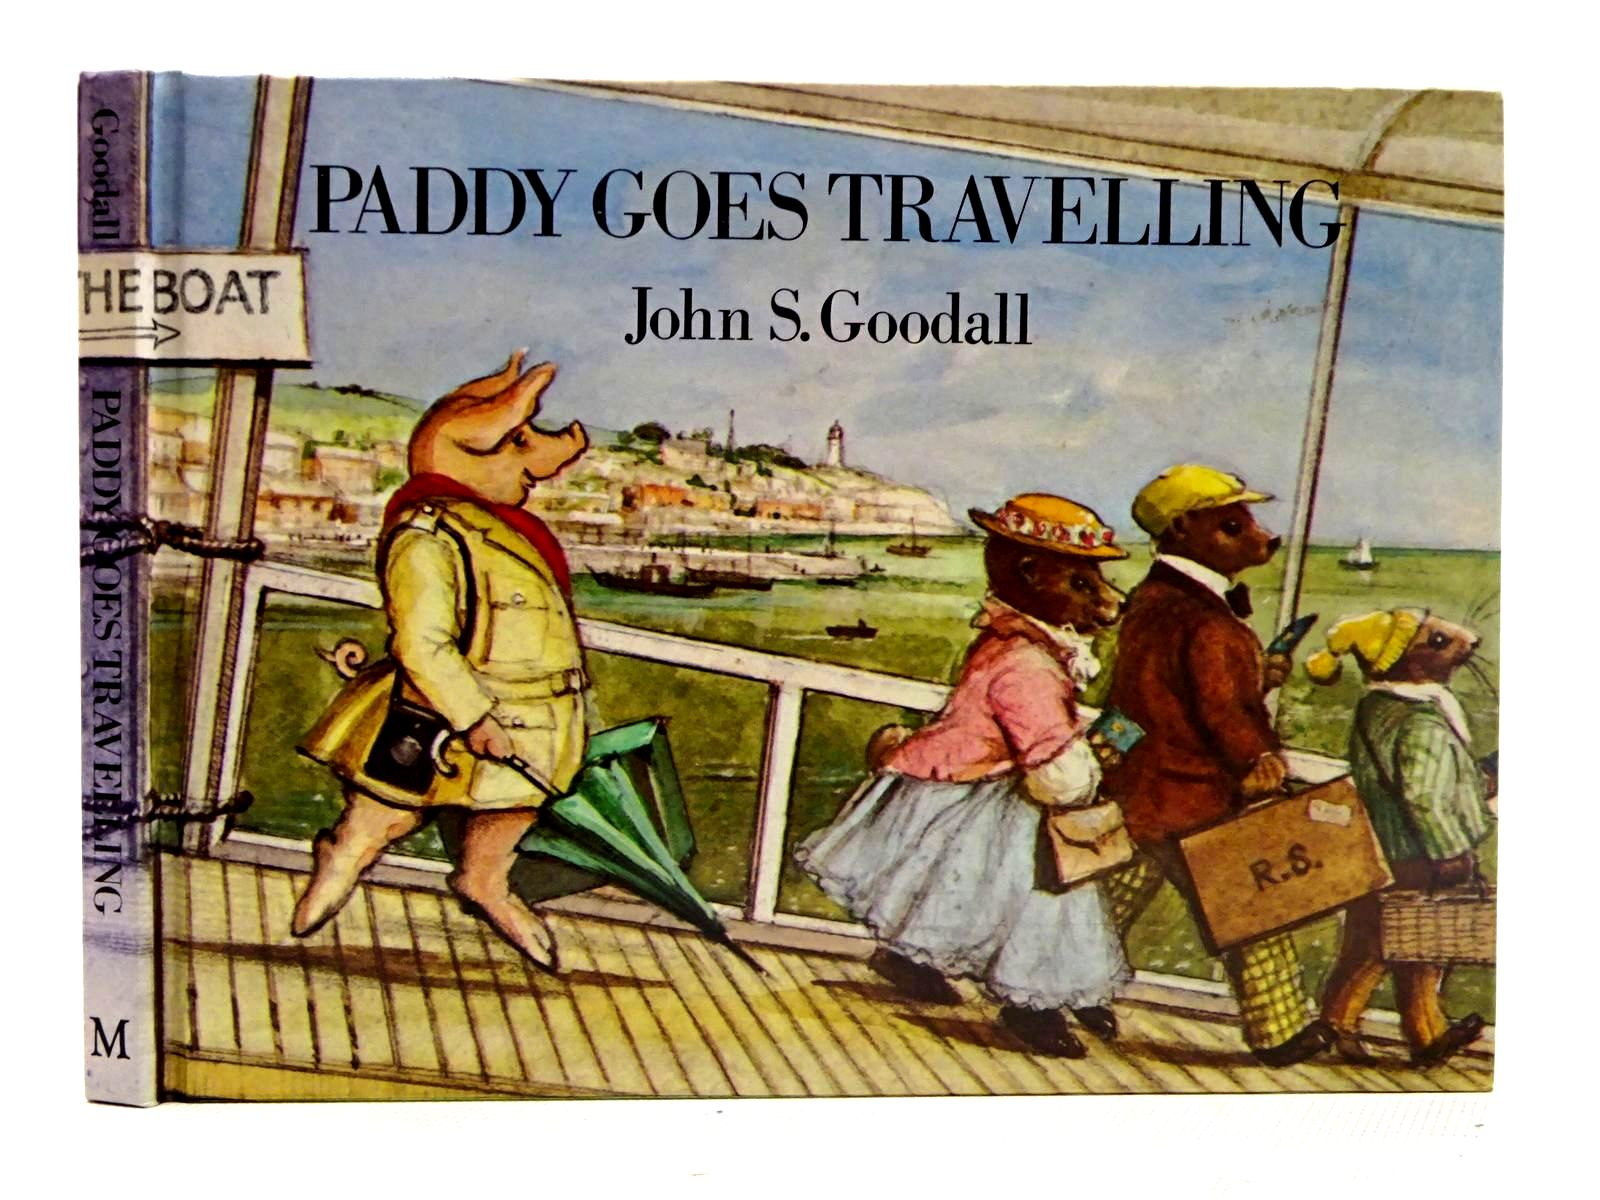 Photo of PADDY GOES TRAVELLING written by Goodall, John S. illustrated by Goodall, John S. published by Macmillan Children's Books (STOCK CODE: 2126605)  for sale by Stella & Rose's Books